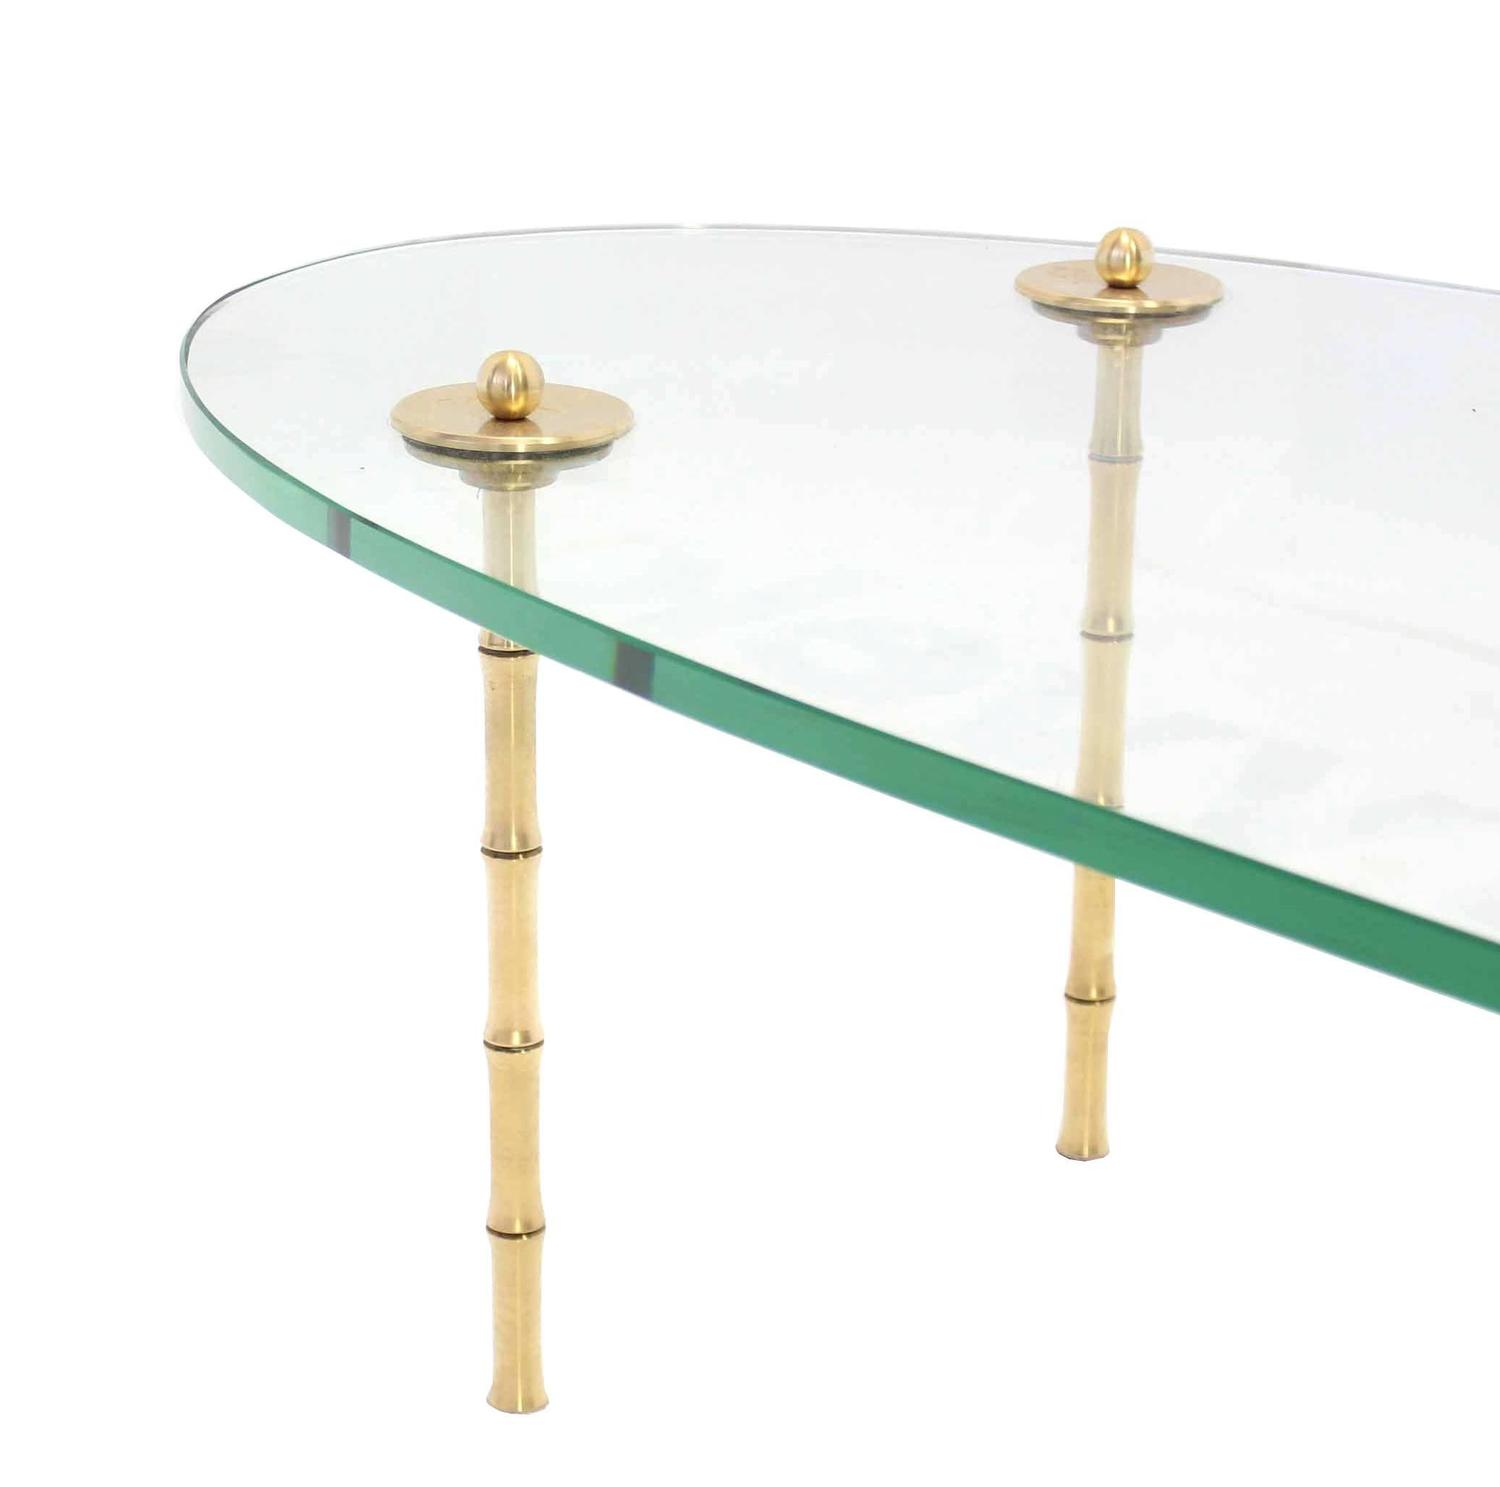 Brass Faux Bamboo Legs Thick Glass Top Coffee Table For Sale At 1stdibs